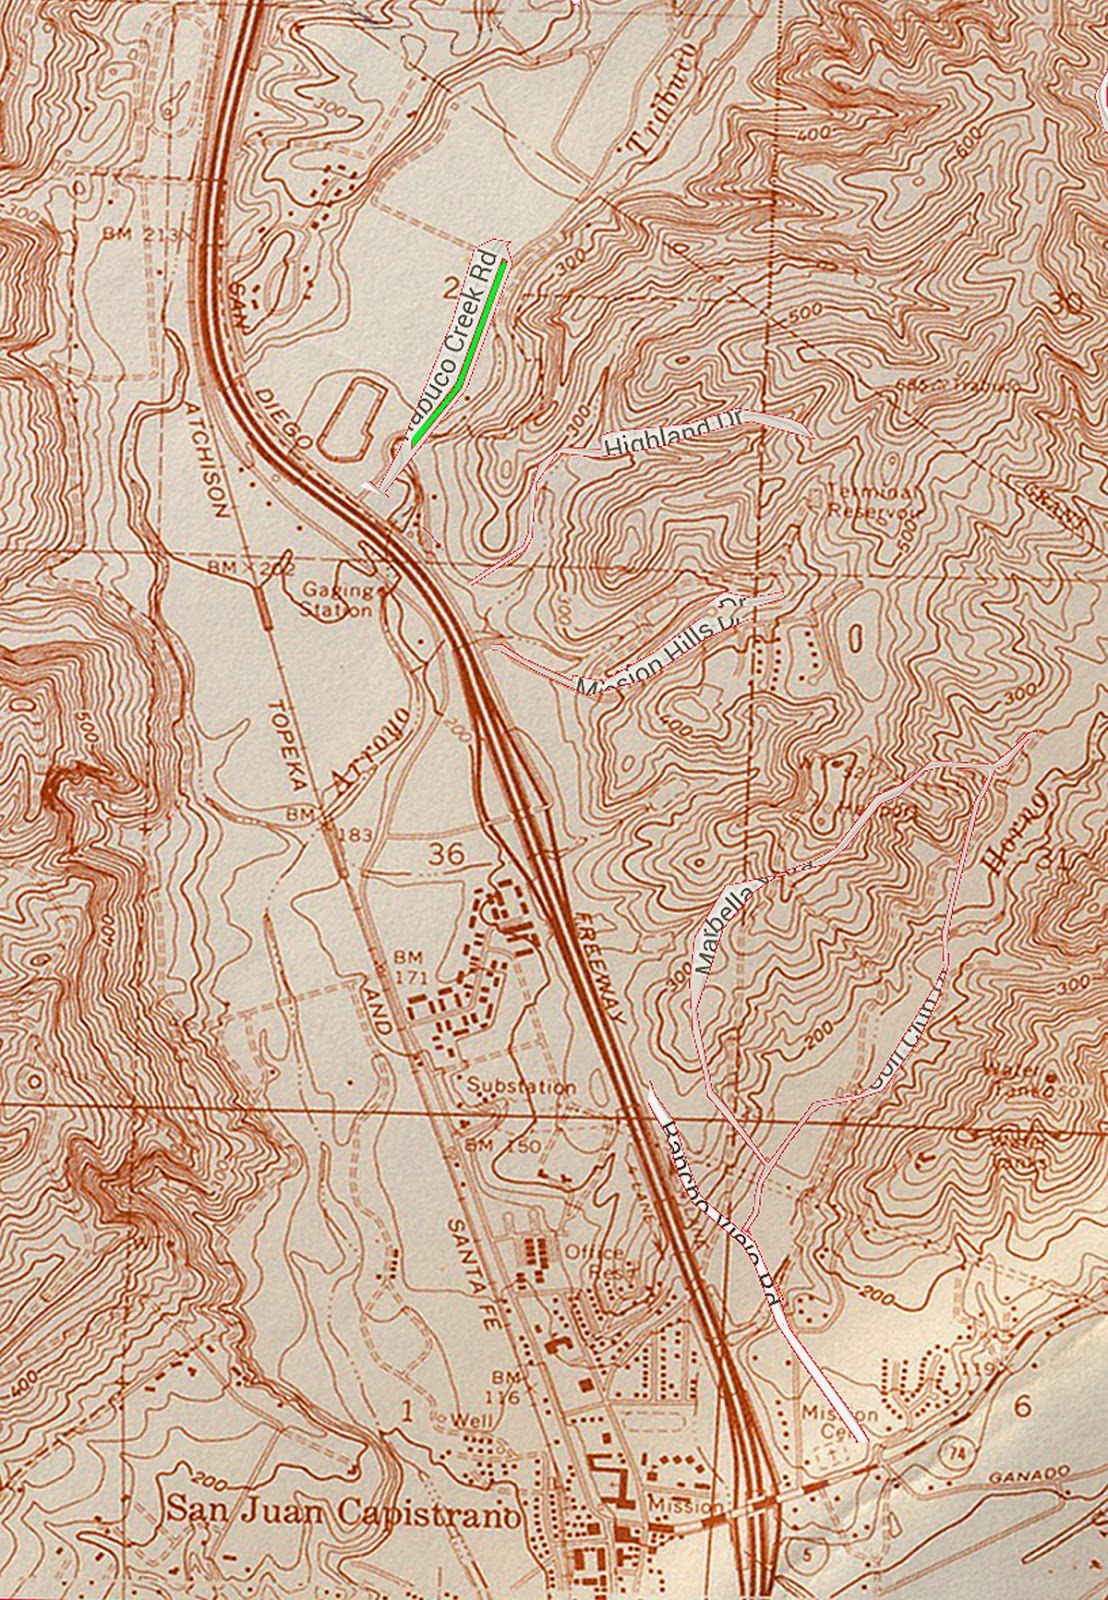 Saddleback College: topographic map on compton community college map, la pierce college map, los angeles valley college map, city college of san francisco map, college of marin map, shoreline community college map, valley college campus map, mt hood community college map, lassen college map, mt. san jacinto college map, irvine valley college map, mission college map, art center college of design map, college of the redwoods map, salt lake community college map, estrella mountain college map, la southwest college map, college of the sequoias map, goodwin college map, red rocks community college map,